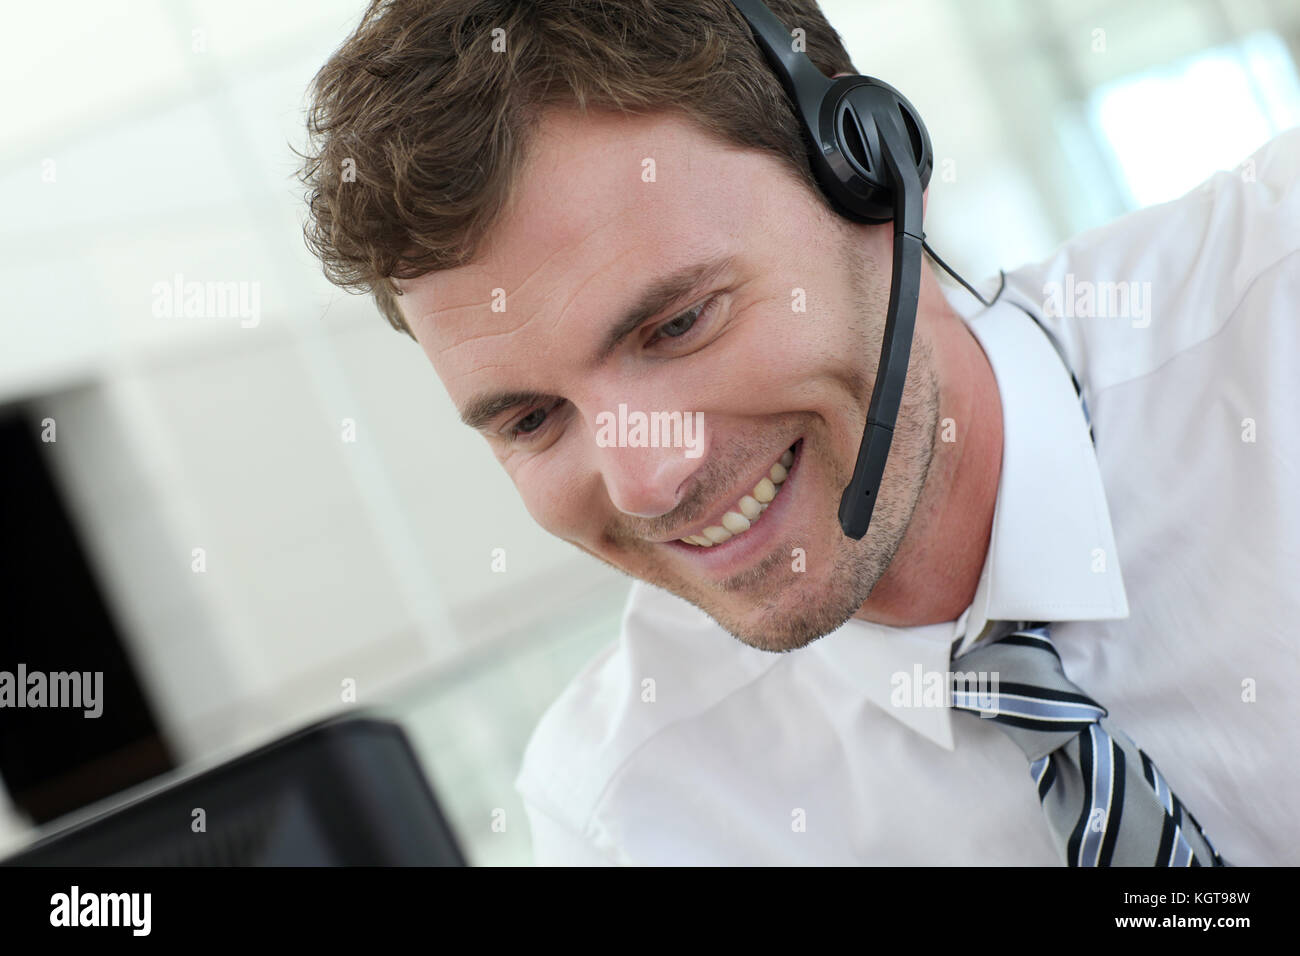 Portrait of salesman with headset on Stock Photo